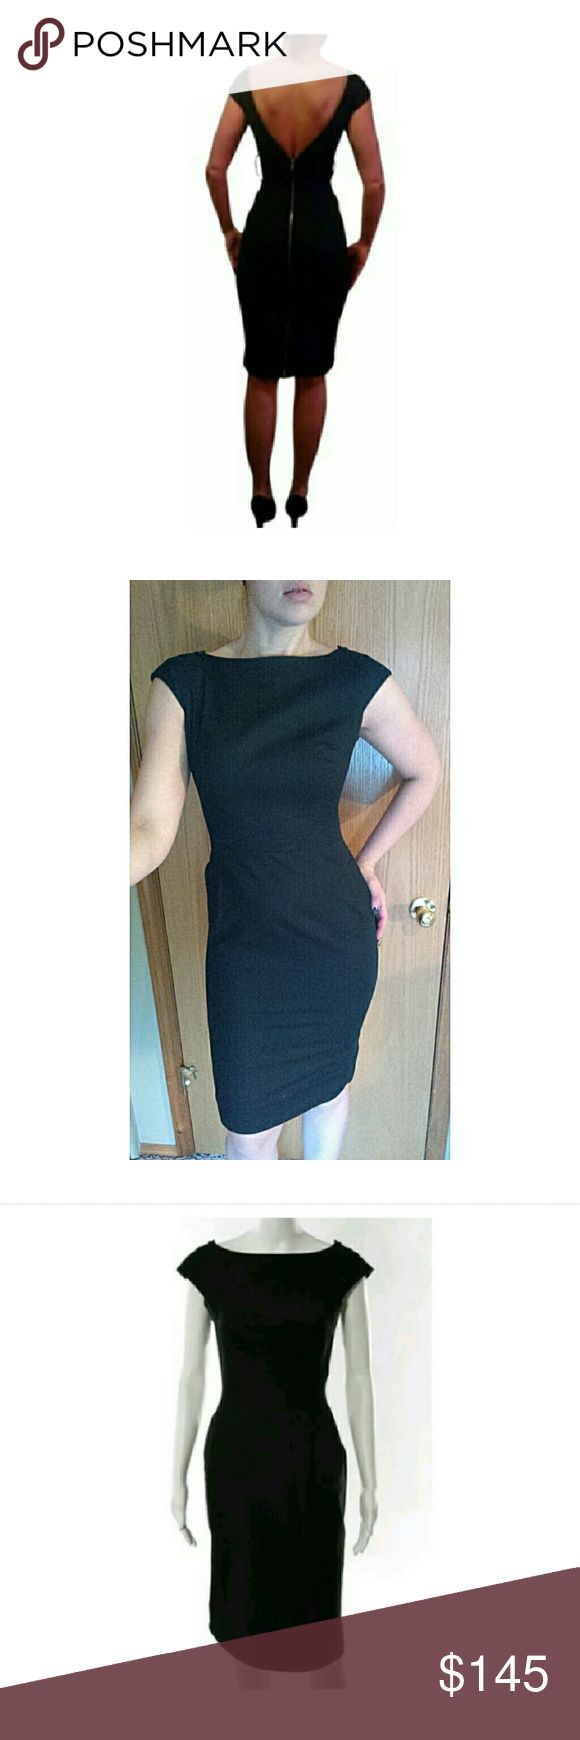 """Byron Lars Black Exposed Zipper Pencil Dress SZ 8 Beautiful Byron Lars black pencil dress. While the front says traditional classic, the back has a twist. A silver exposed Zipper runs from the hem all the way up to the shoulders. The effect is that when the zipper stops mid back, you can see the zipper teeth along the shoulders of the back. Belt loops at waist (doesn't come with belt). Hits at knee. Classic and sexy.  Excellent condition.  Size 8.  Measurements taken laying flat: Bust: 18""""…"""